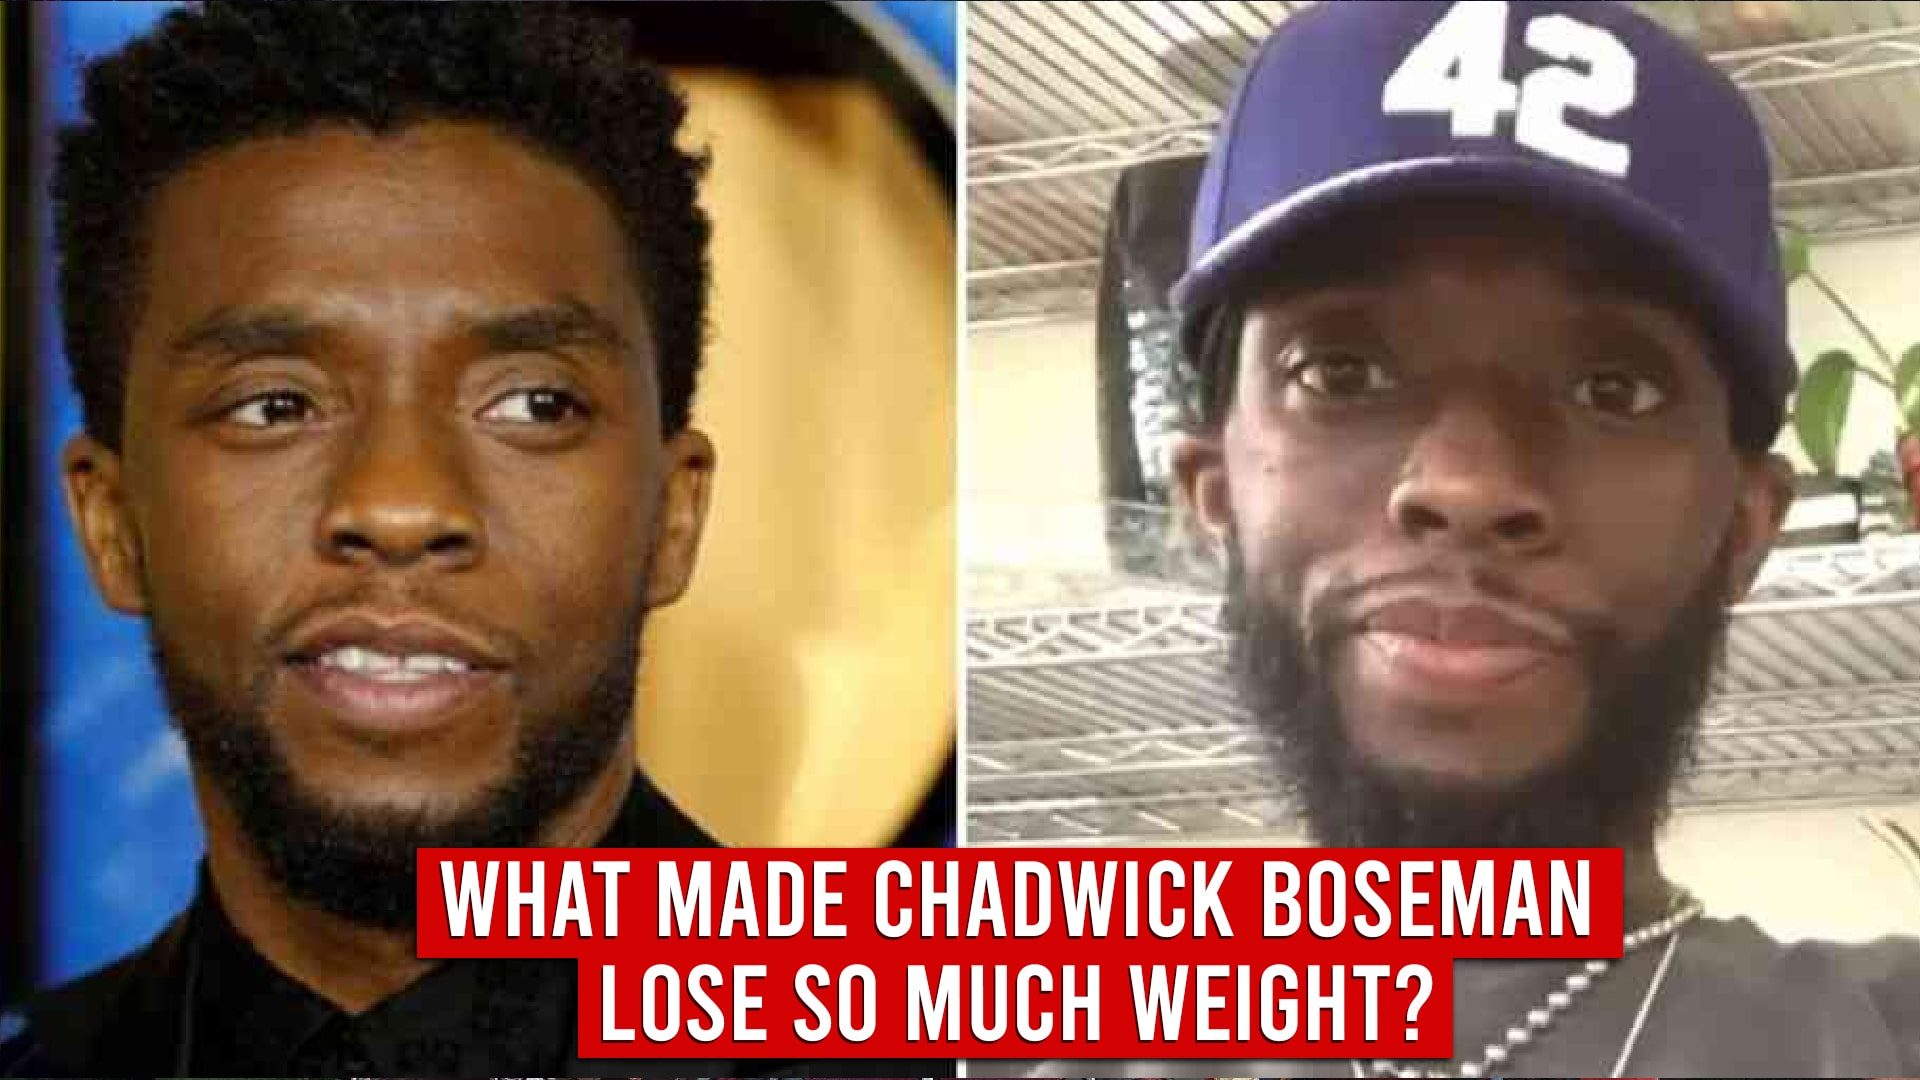 Reason behind Chadwick Boseman Weight Loss